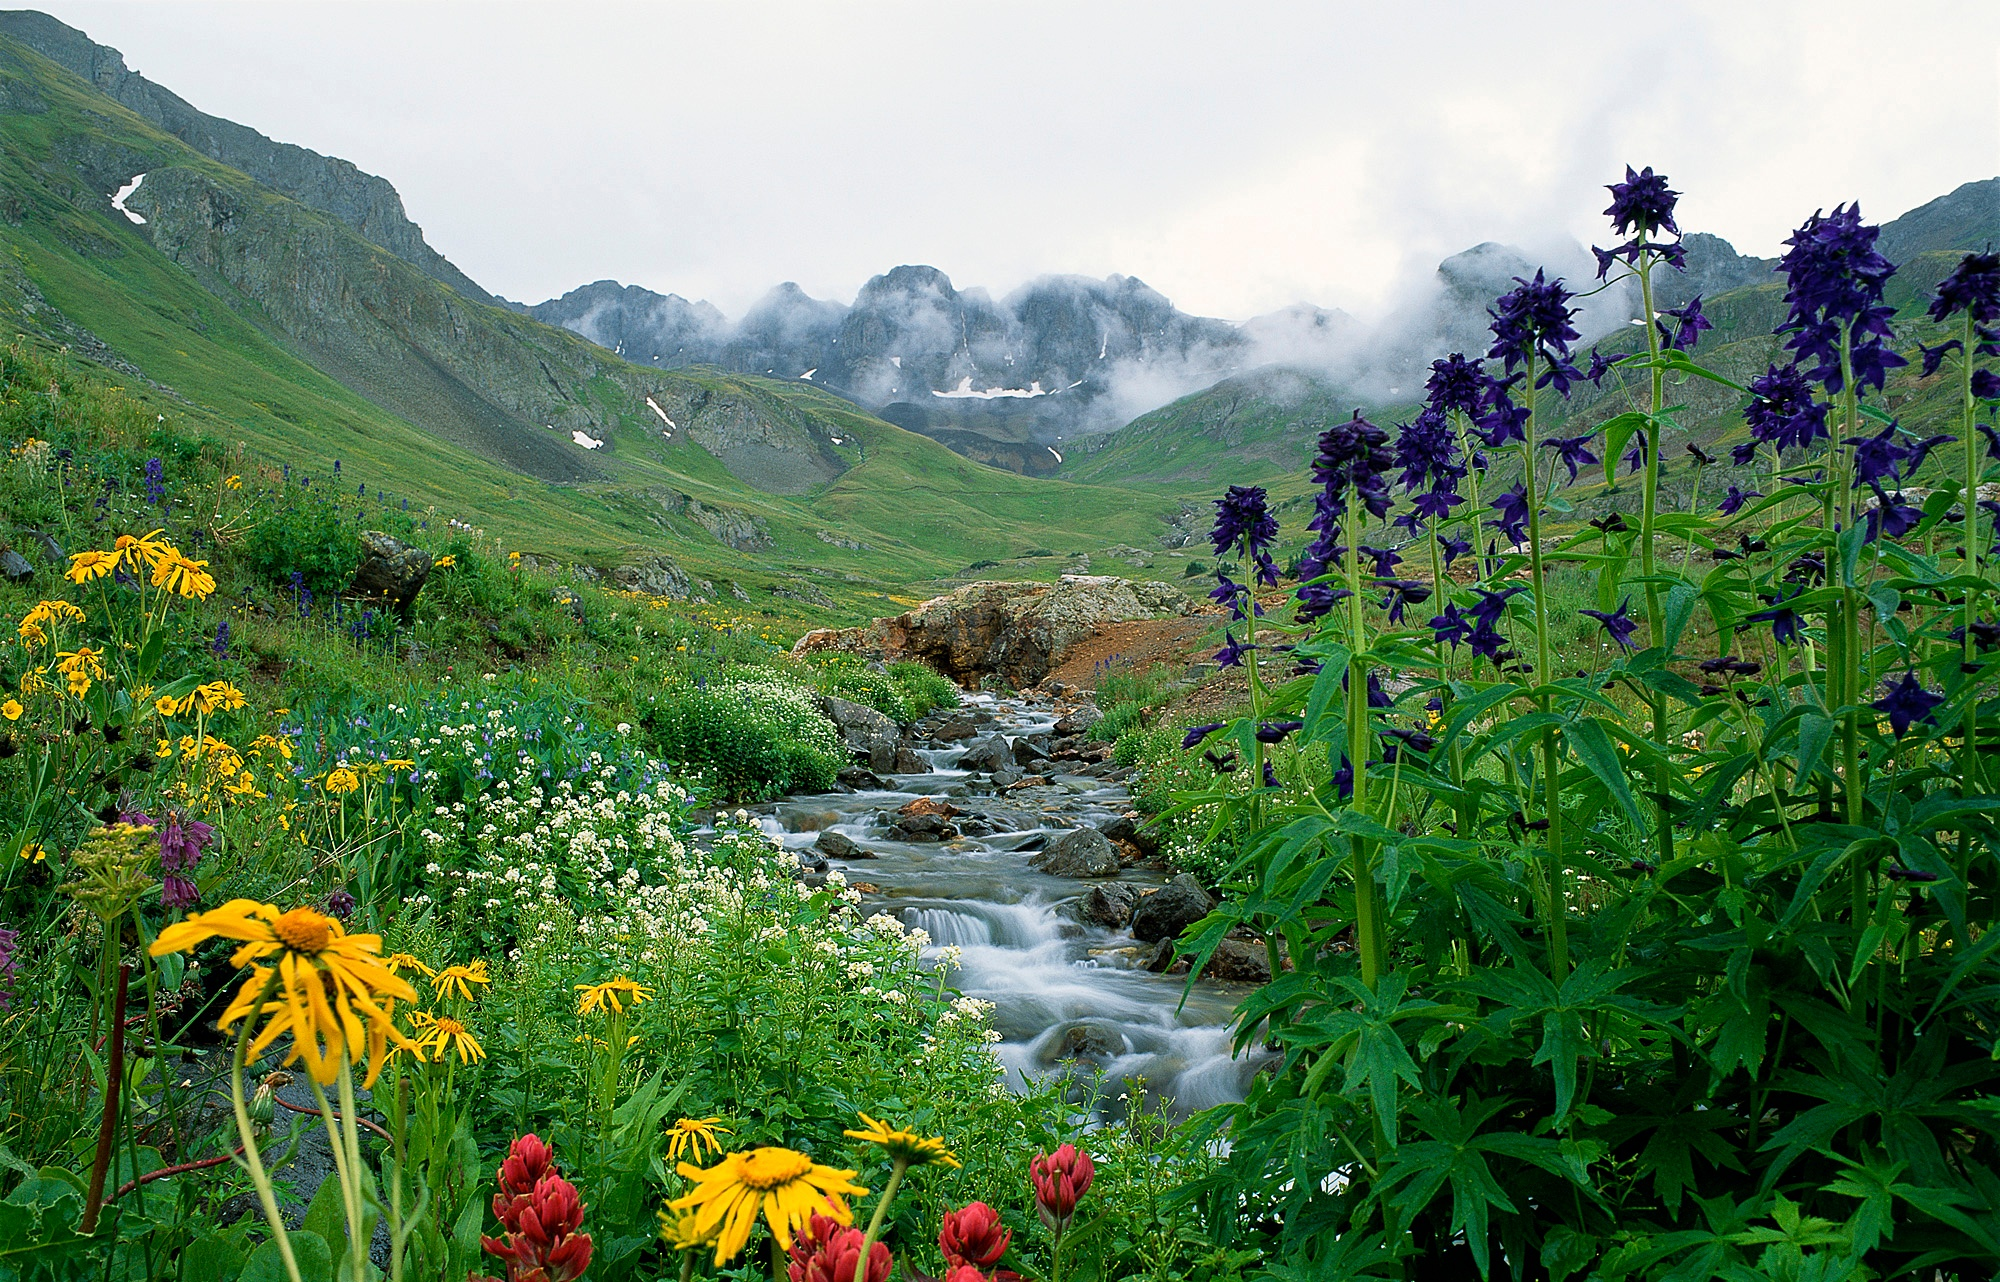 MISTY-BASIN-telluride-wildflowers-creek